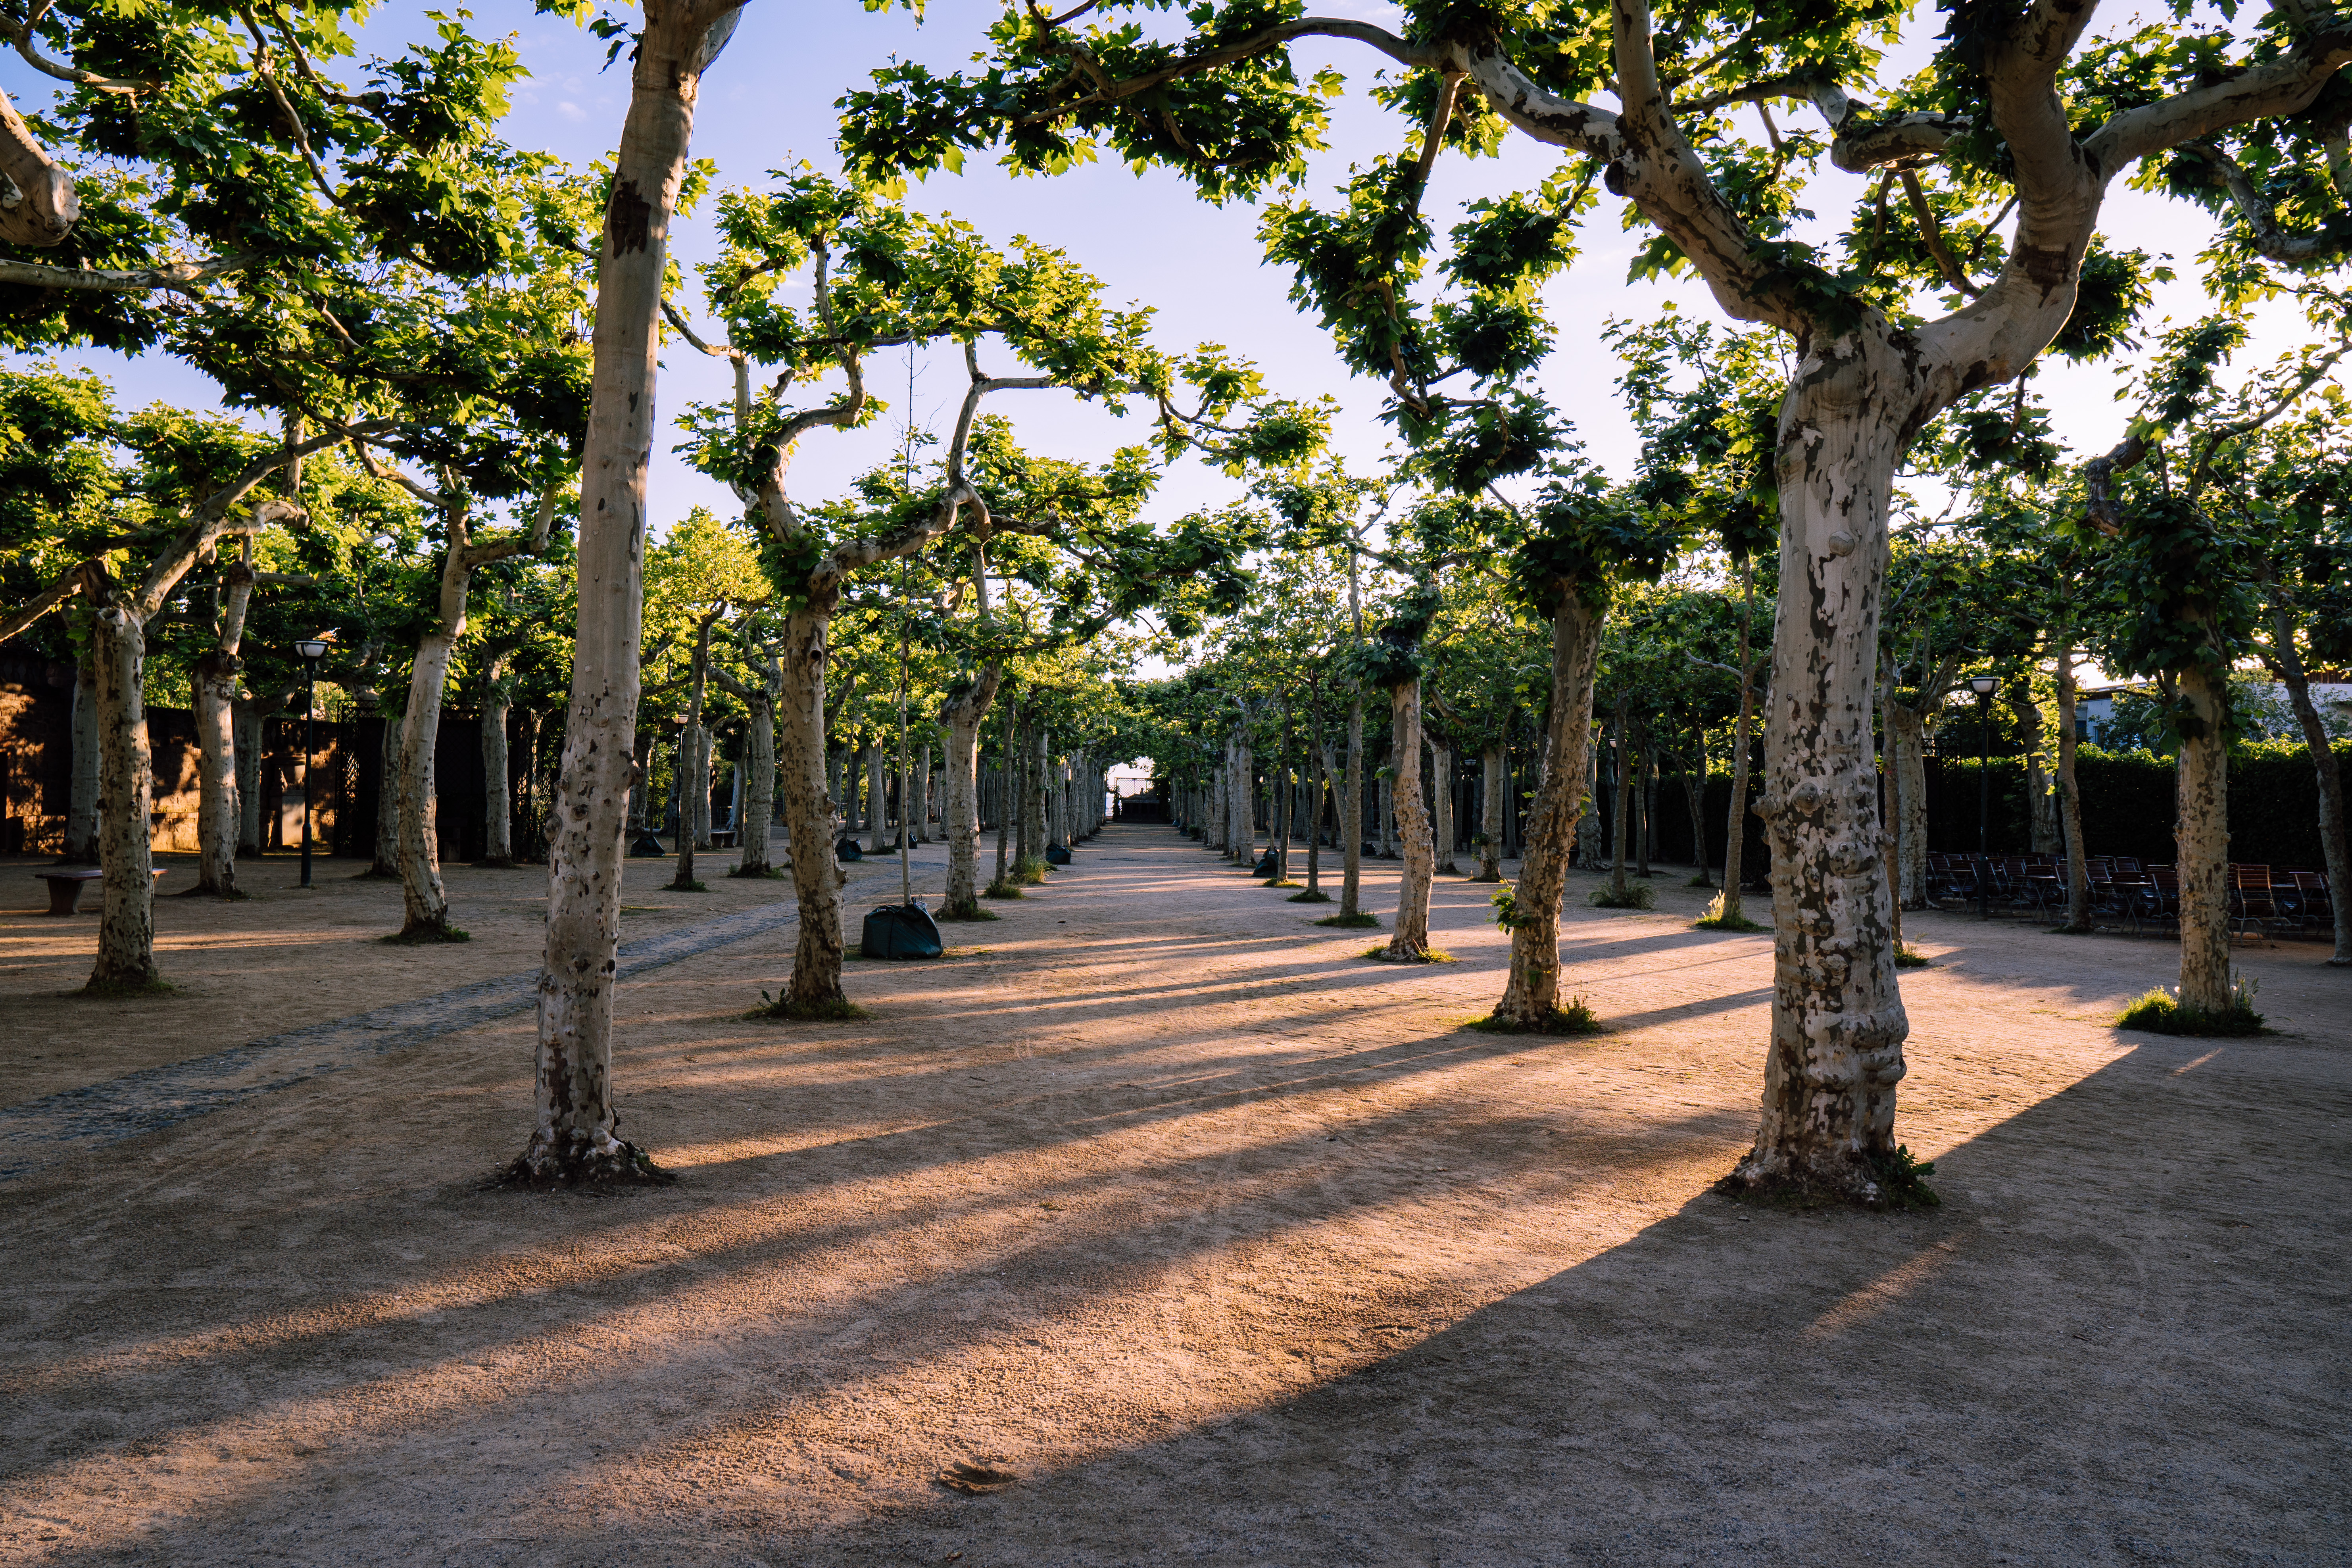 landscape photography of rows of trees